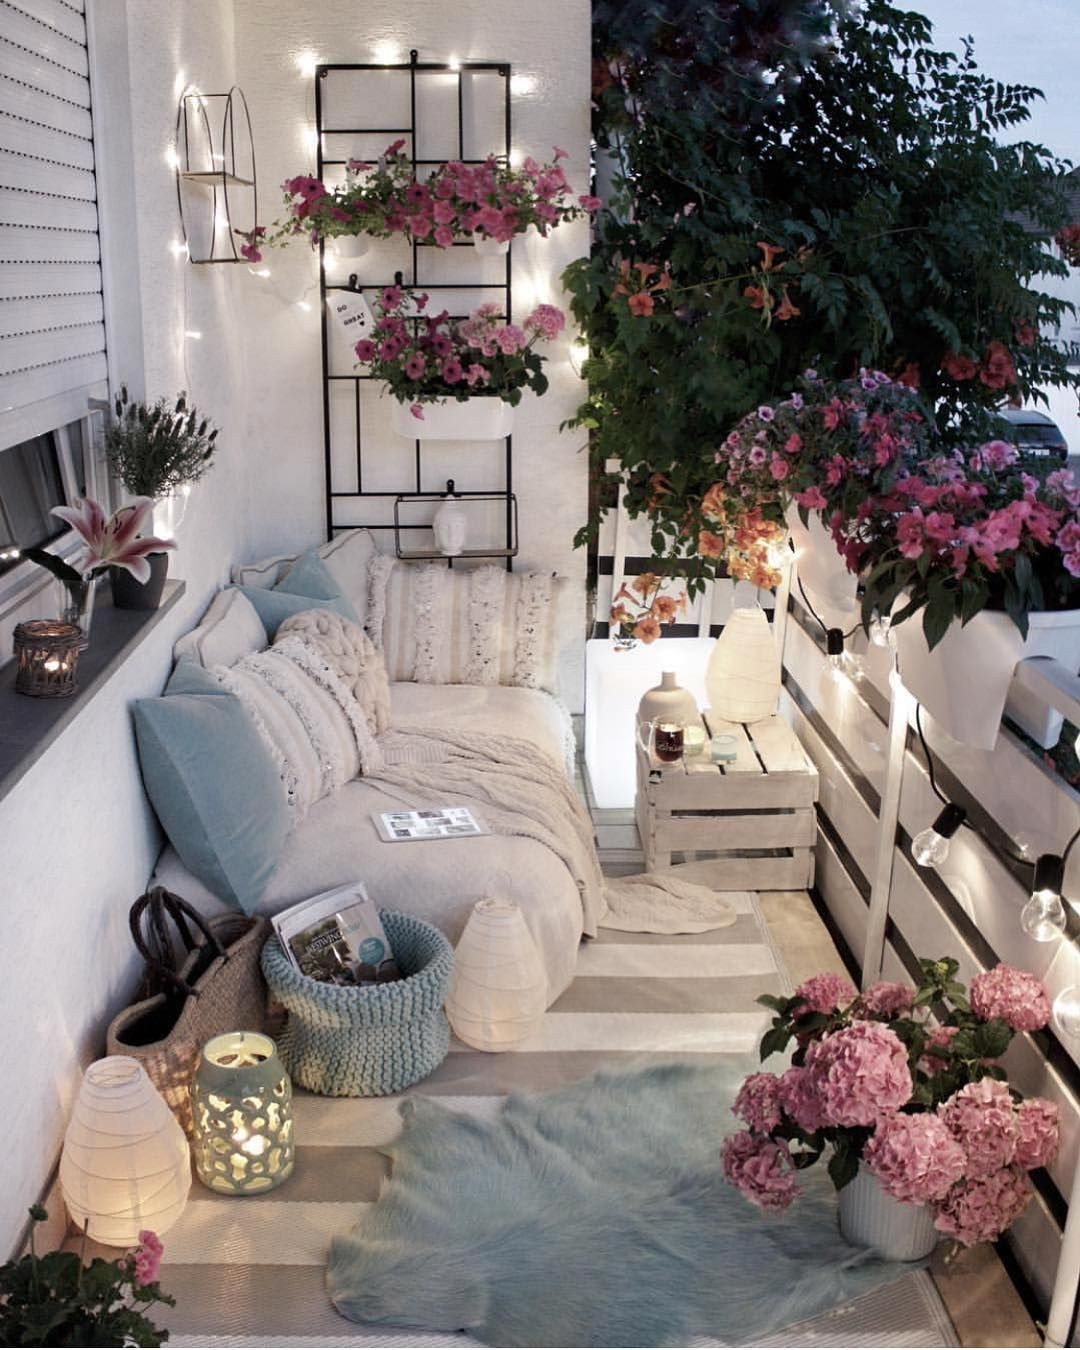 Balcony: 7 tips for your relaxing vacation at home desired.de#balcony #desiredde #home #relaxing #tips #vacation